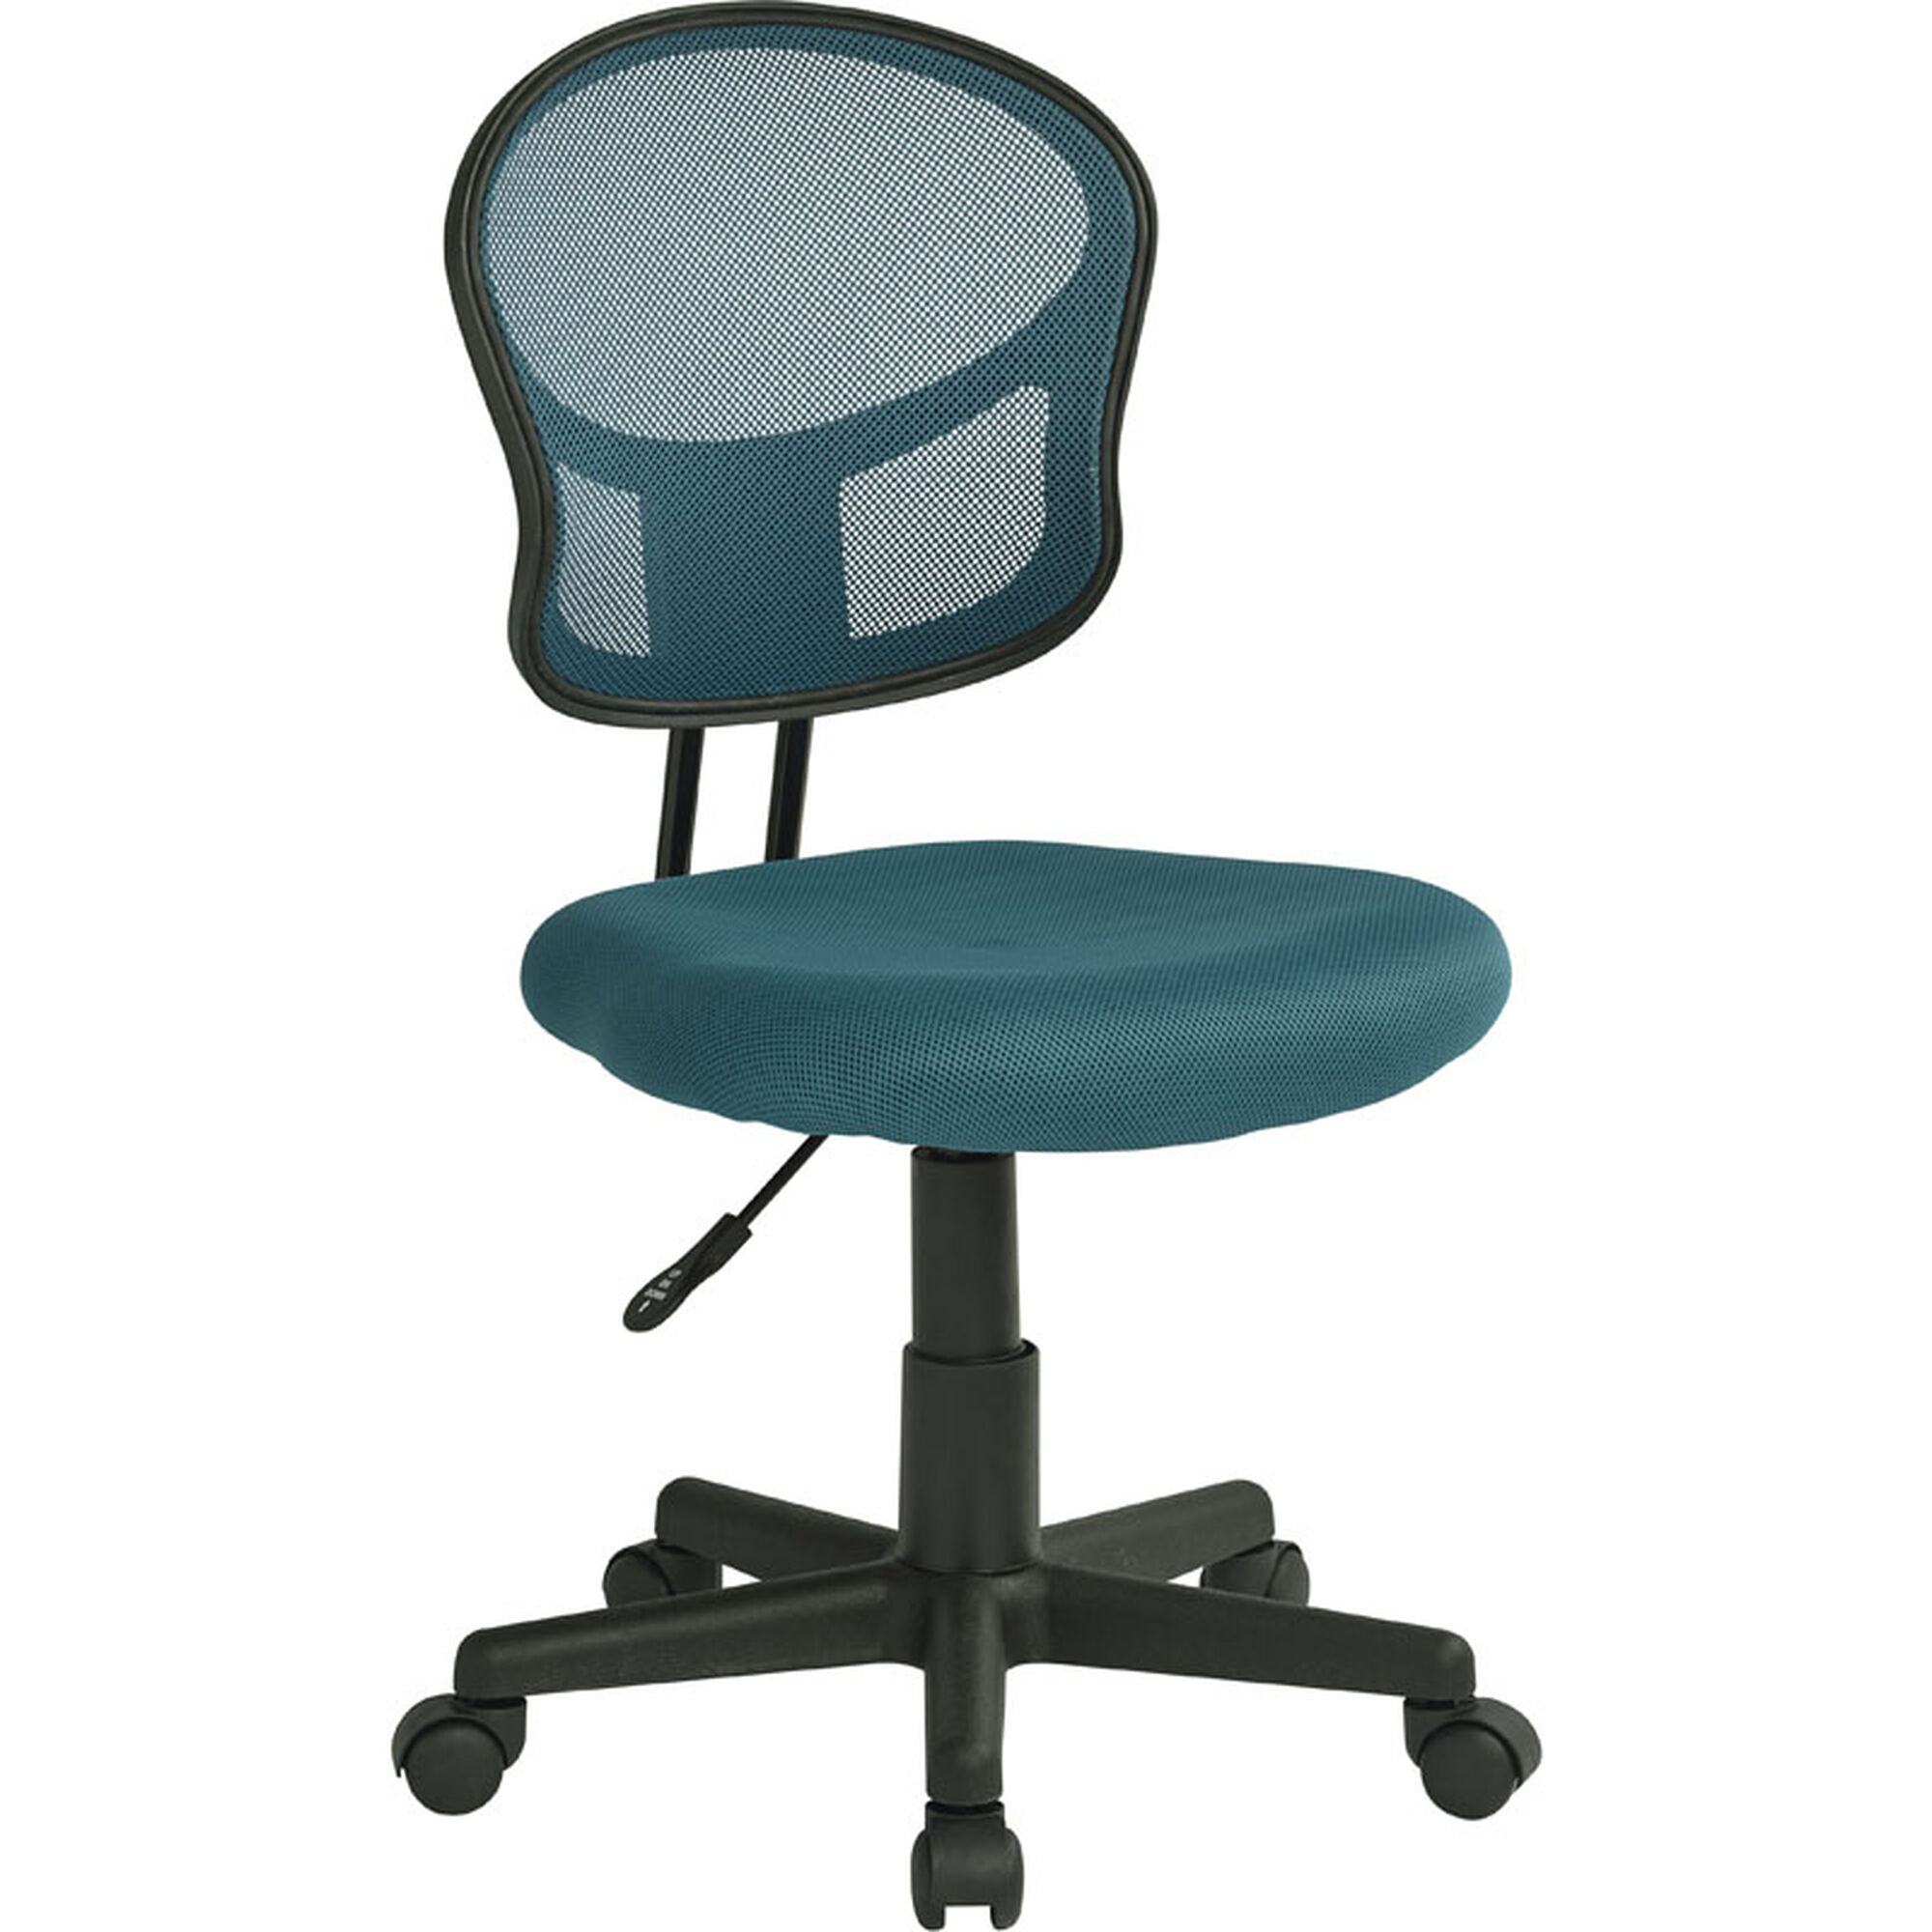 Office star products osp design mesh task office chair for Chair height design